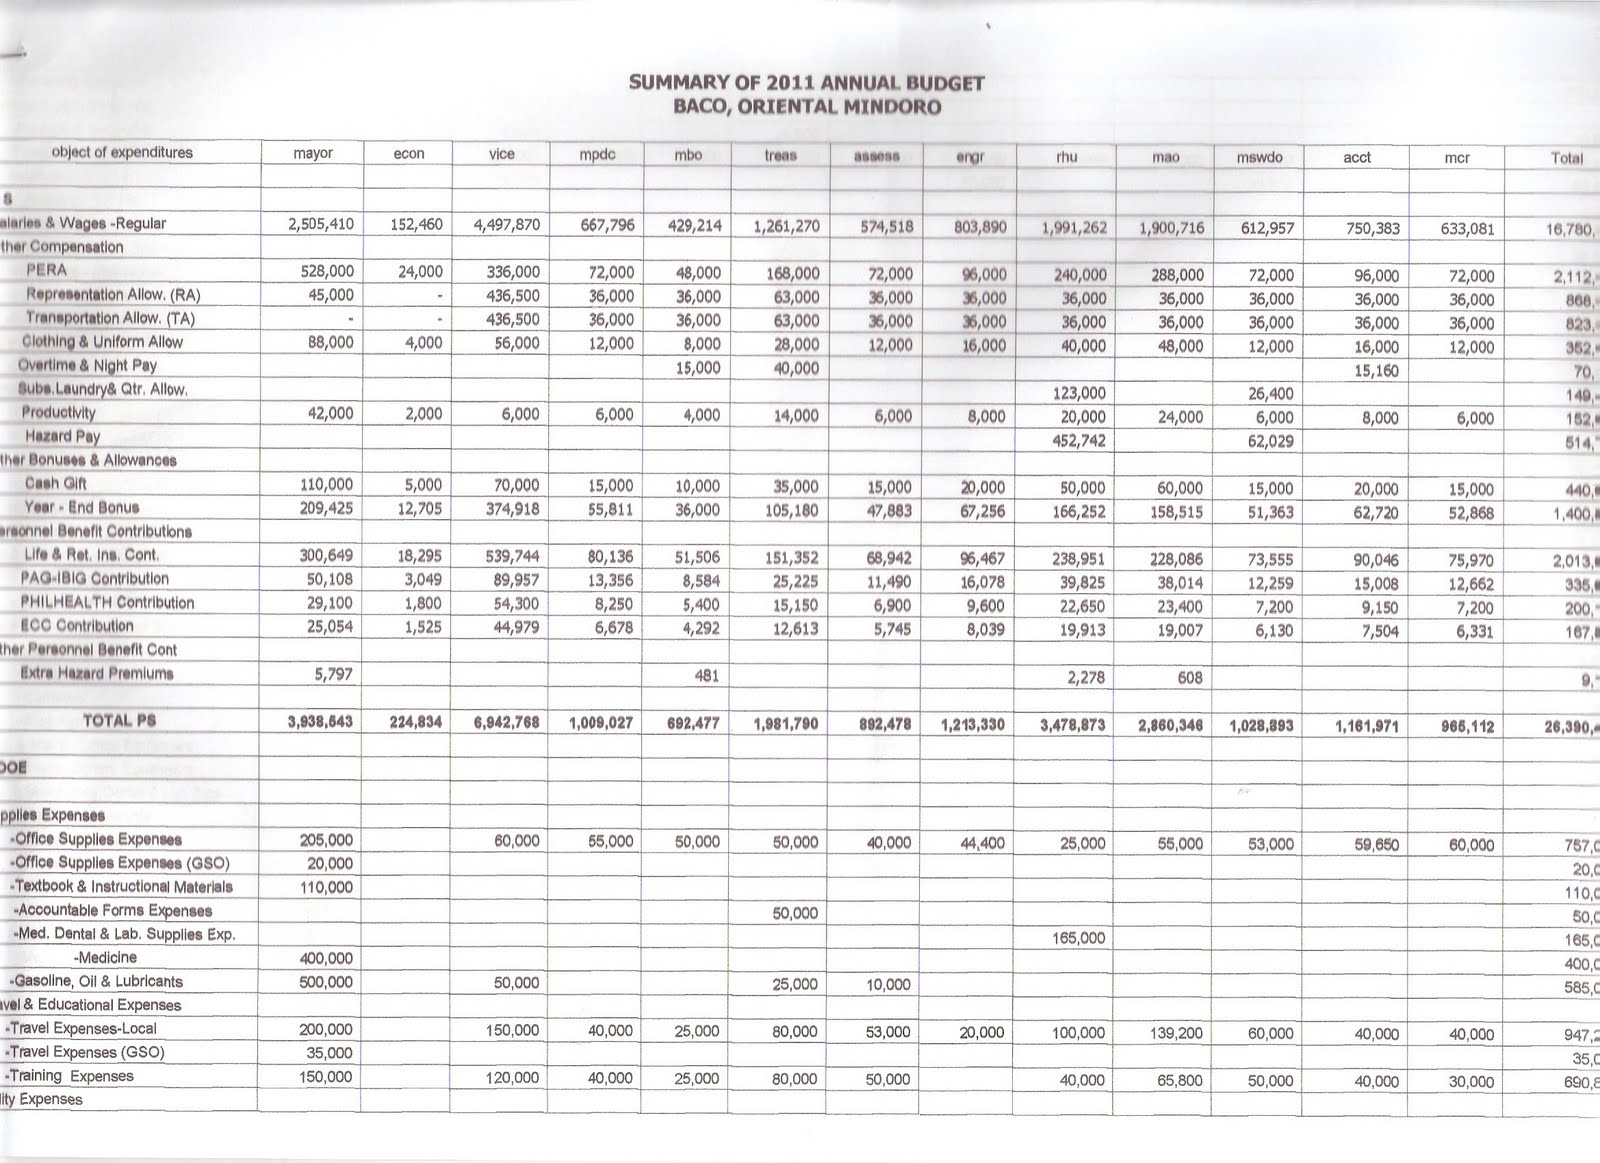 municipality of baco financial disclosures summary of annual budget